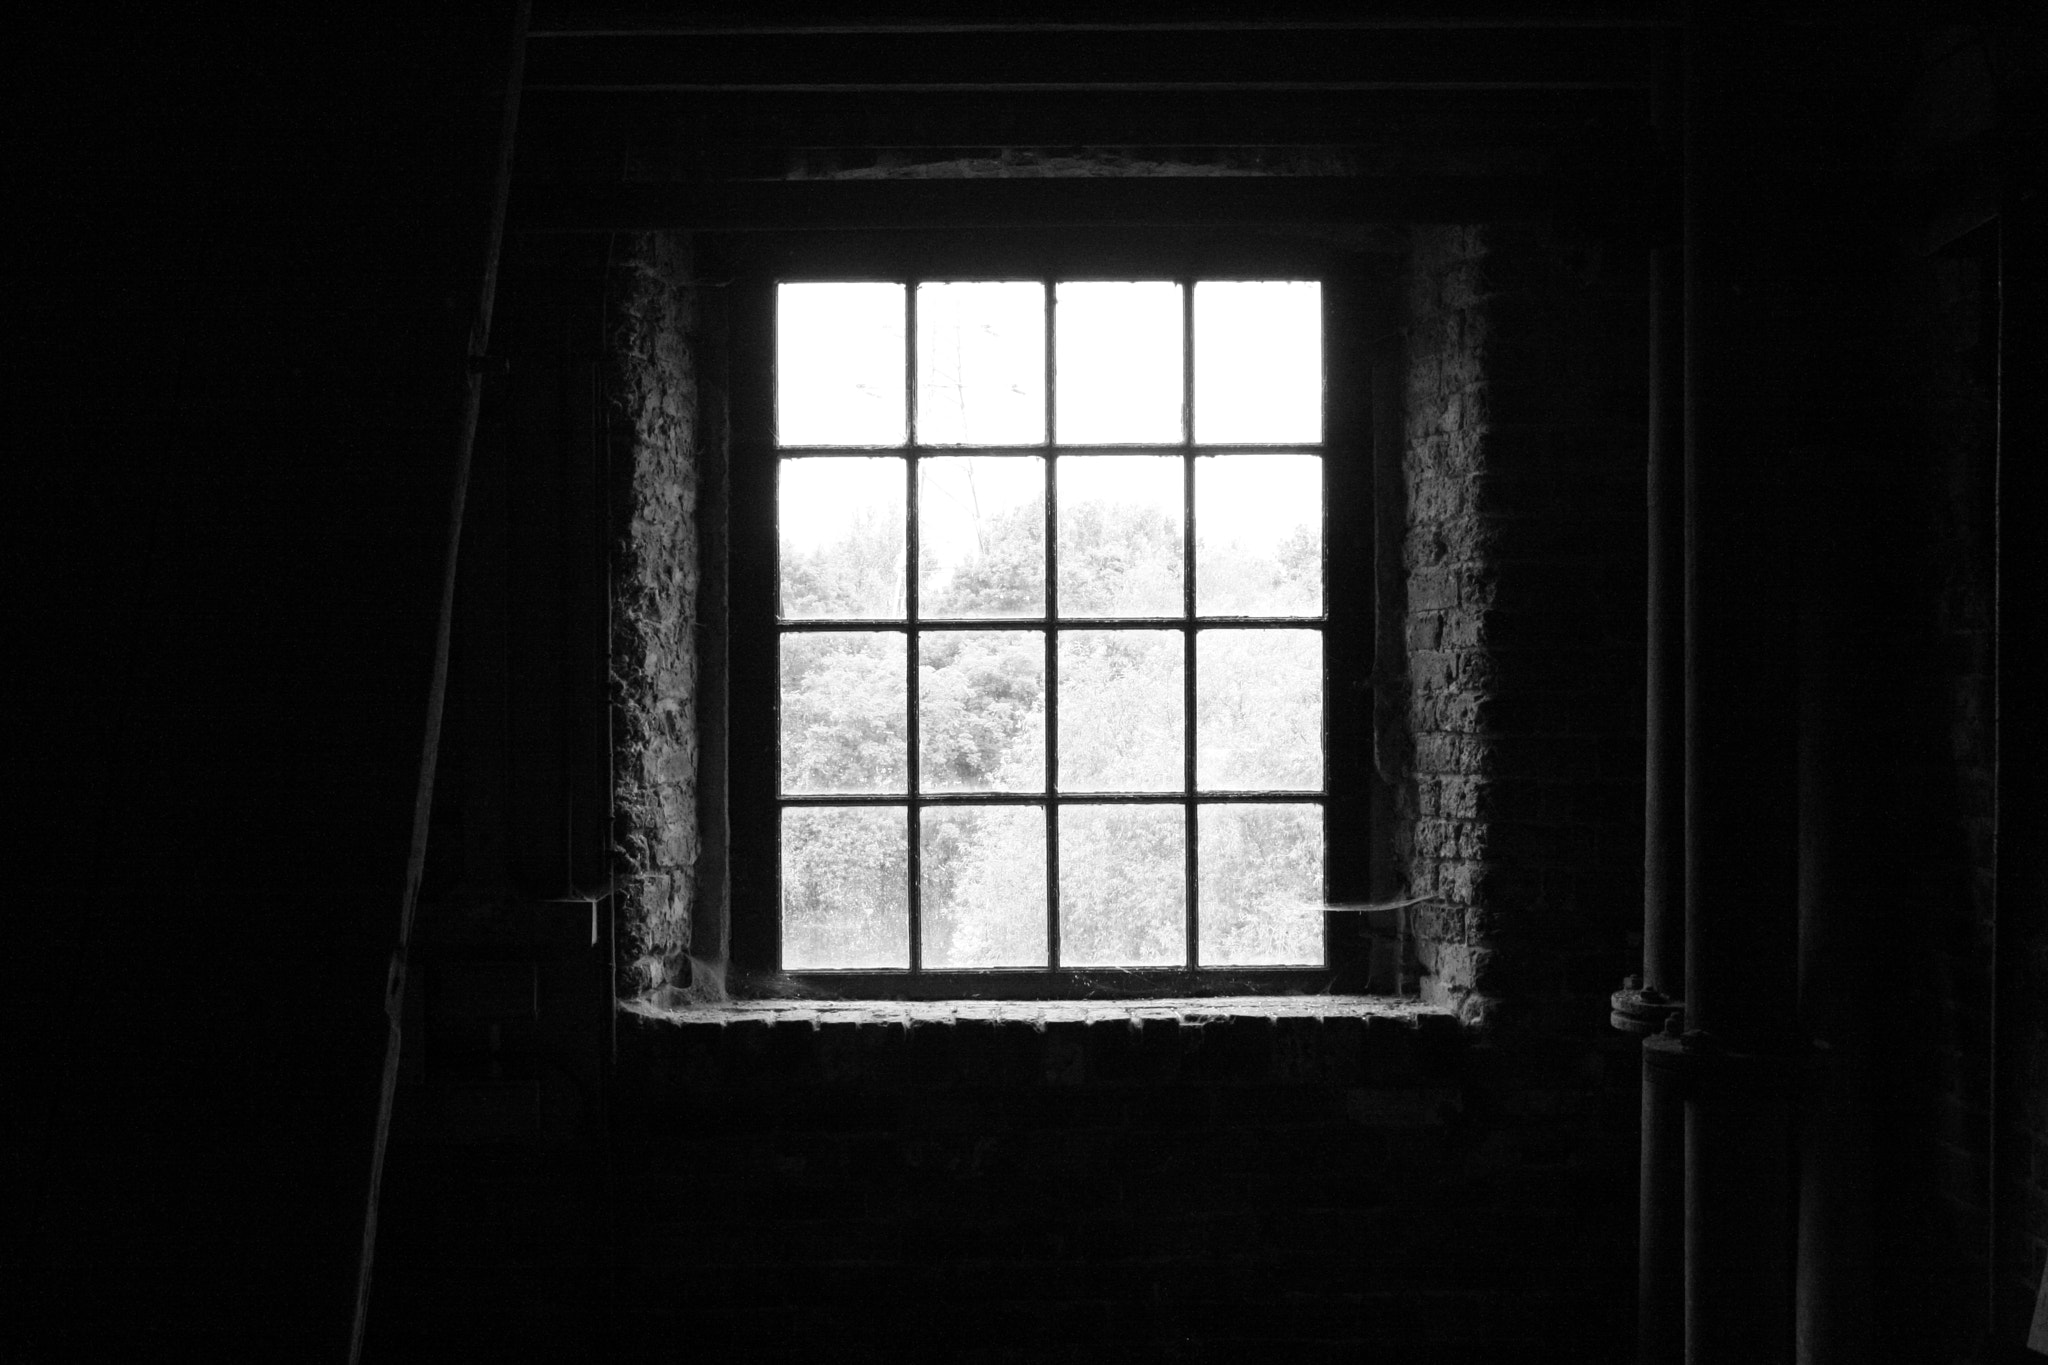 Photograph Mill Window by John O'Hara on 500px